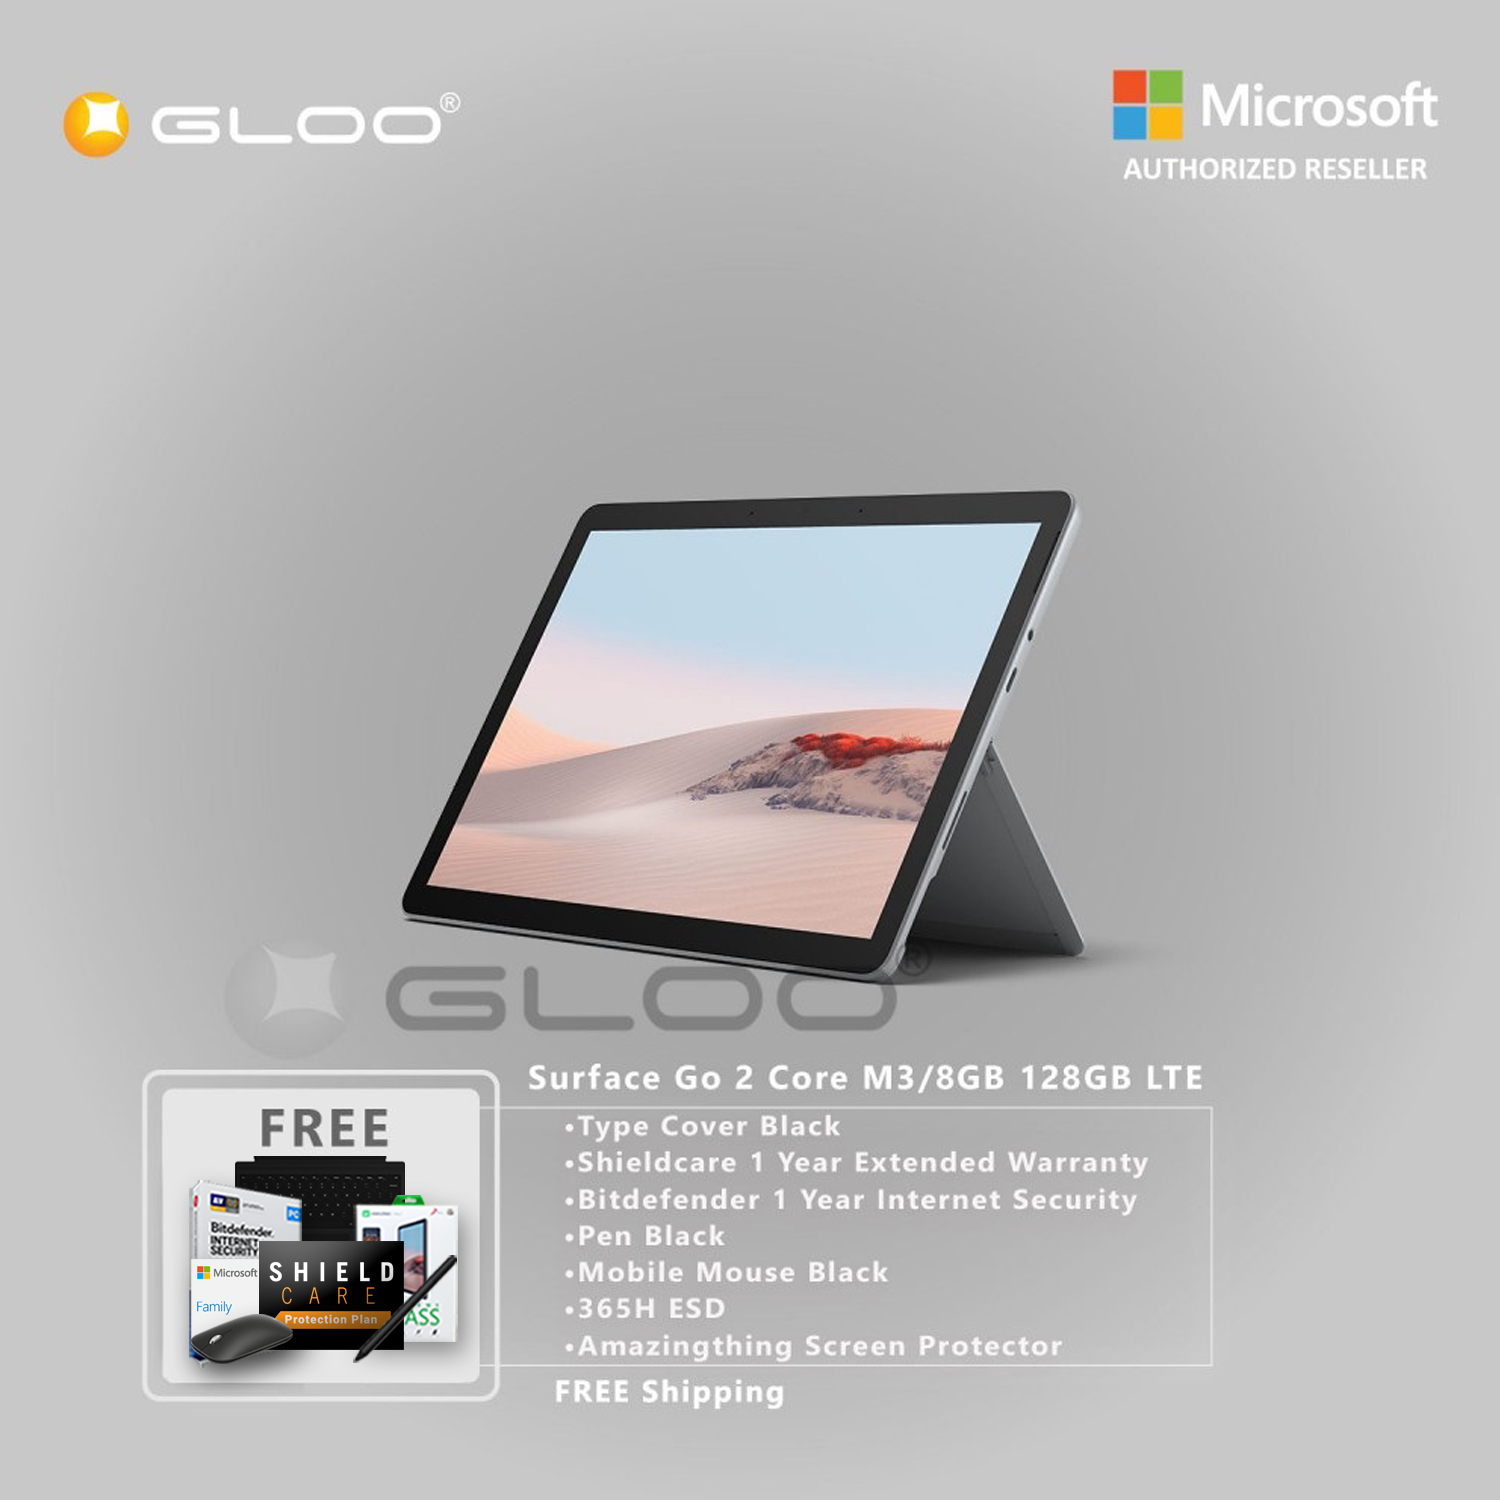 Microsoft Surface Go 2 Core M3/8GB 128GB LTE + Surface Go Type Cover Black + Shield Care 1 Year Extended Warranty+ Bitdefender 1 Year Internet Security+ Pen Black + Mobile Mouse Black + 365H ESD + Amazingthing Screen Protector [BPPMSOFZCBAMBK]